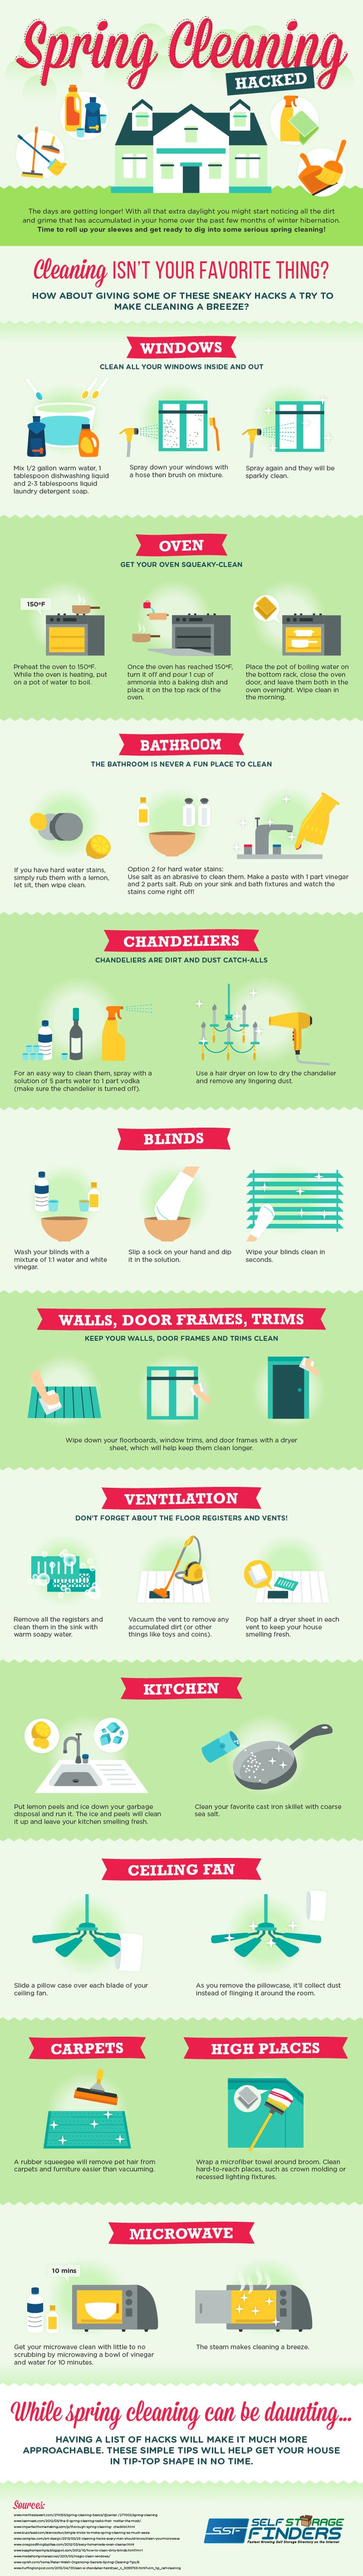 Spring cleaning: Hacked! #Infographic #HomeImprovement